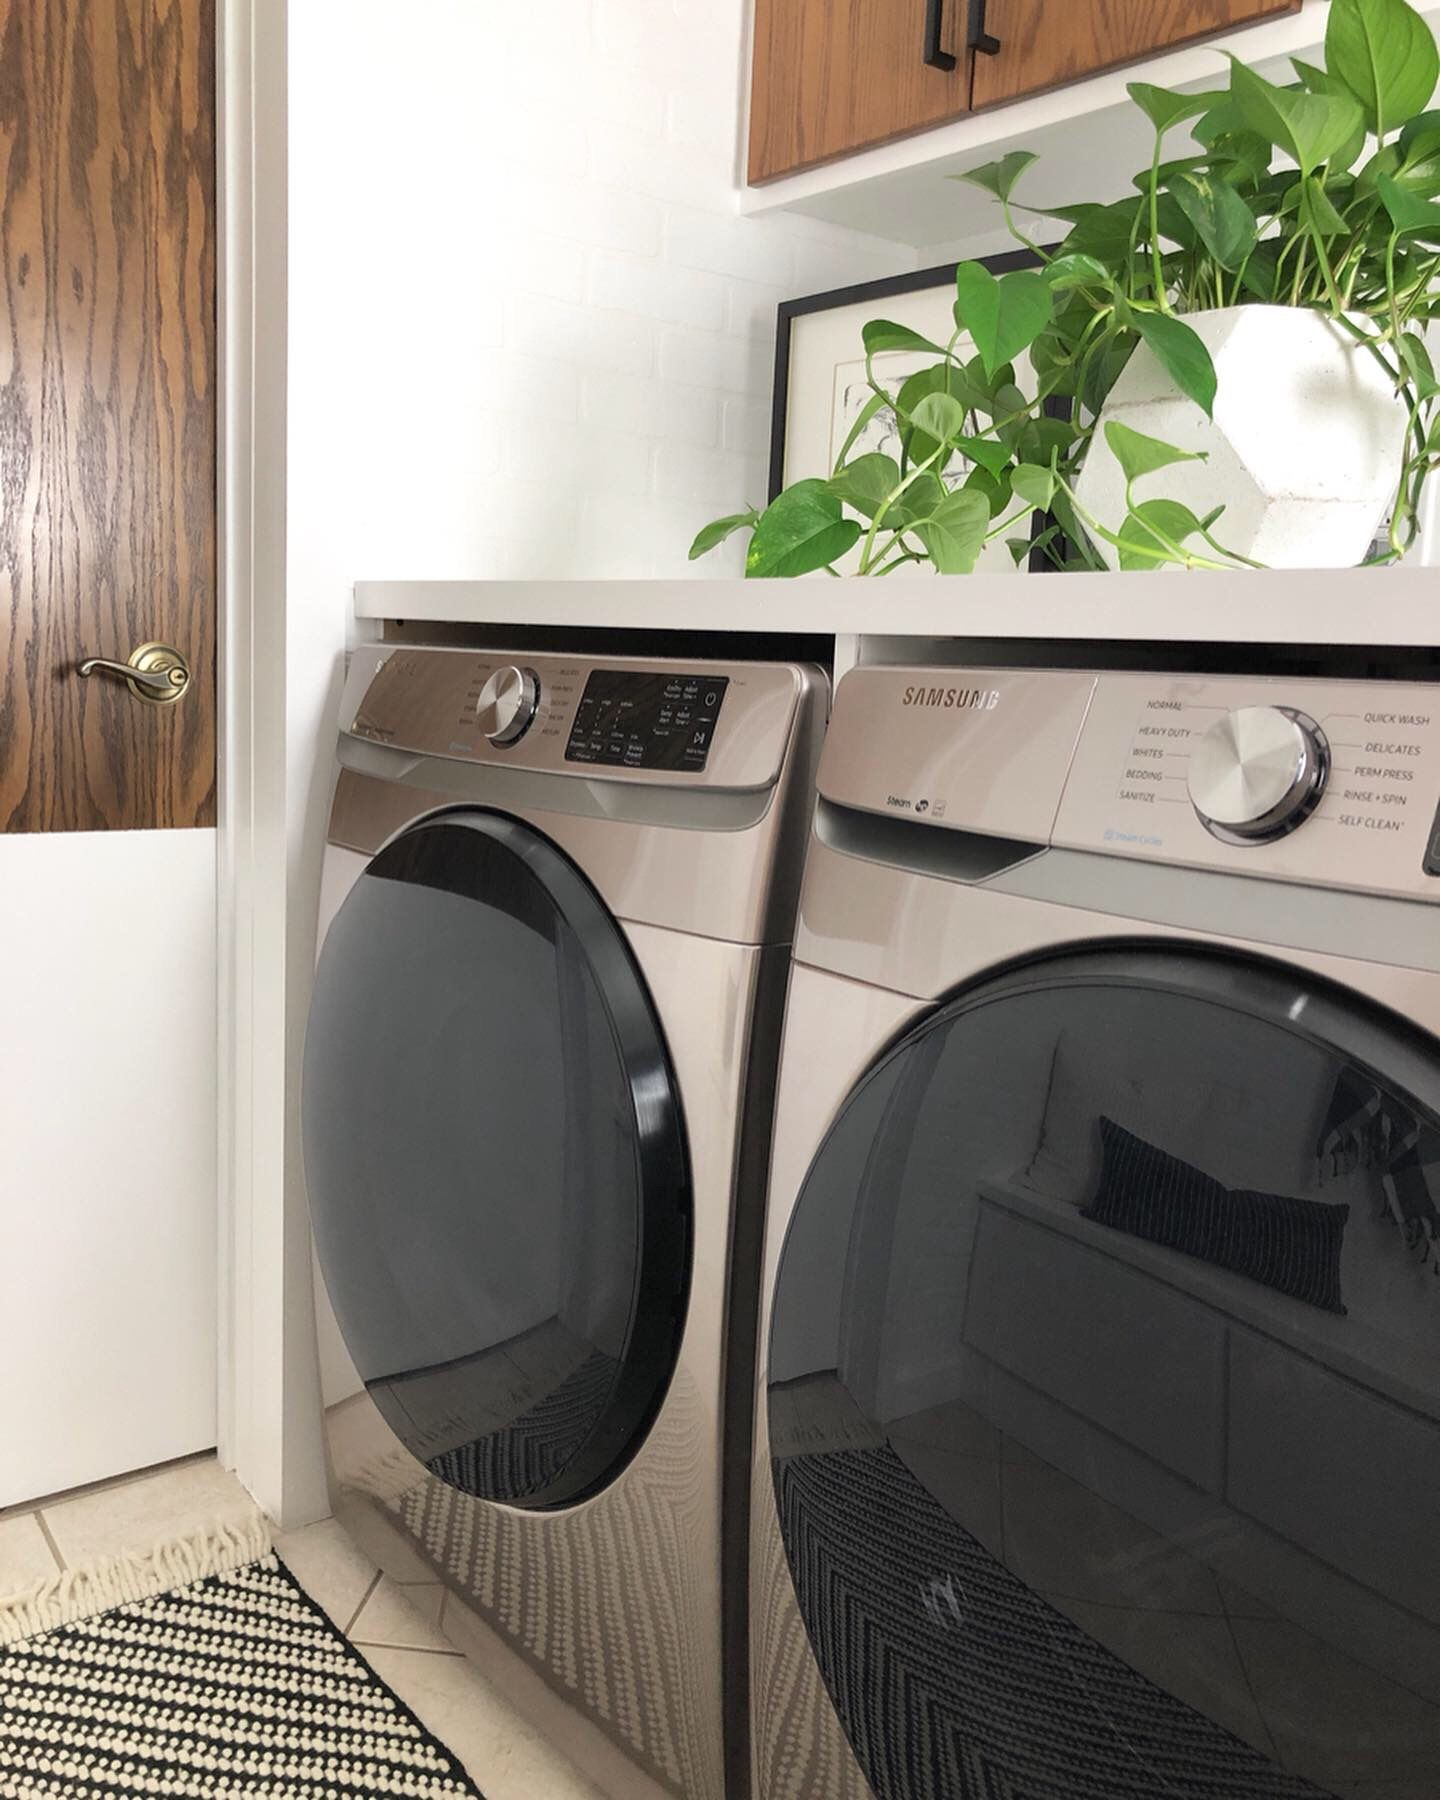 New Champagne Color Washer And Dryer From Samsung Samsung